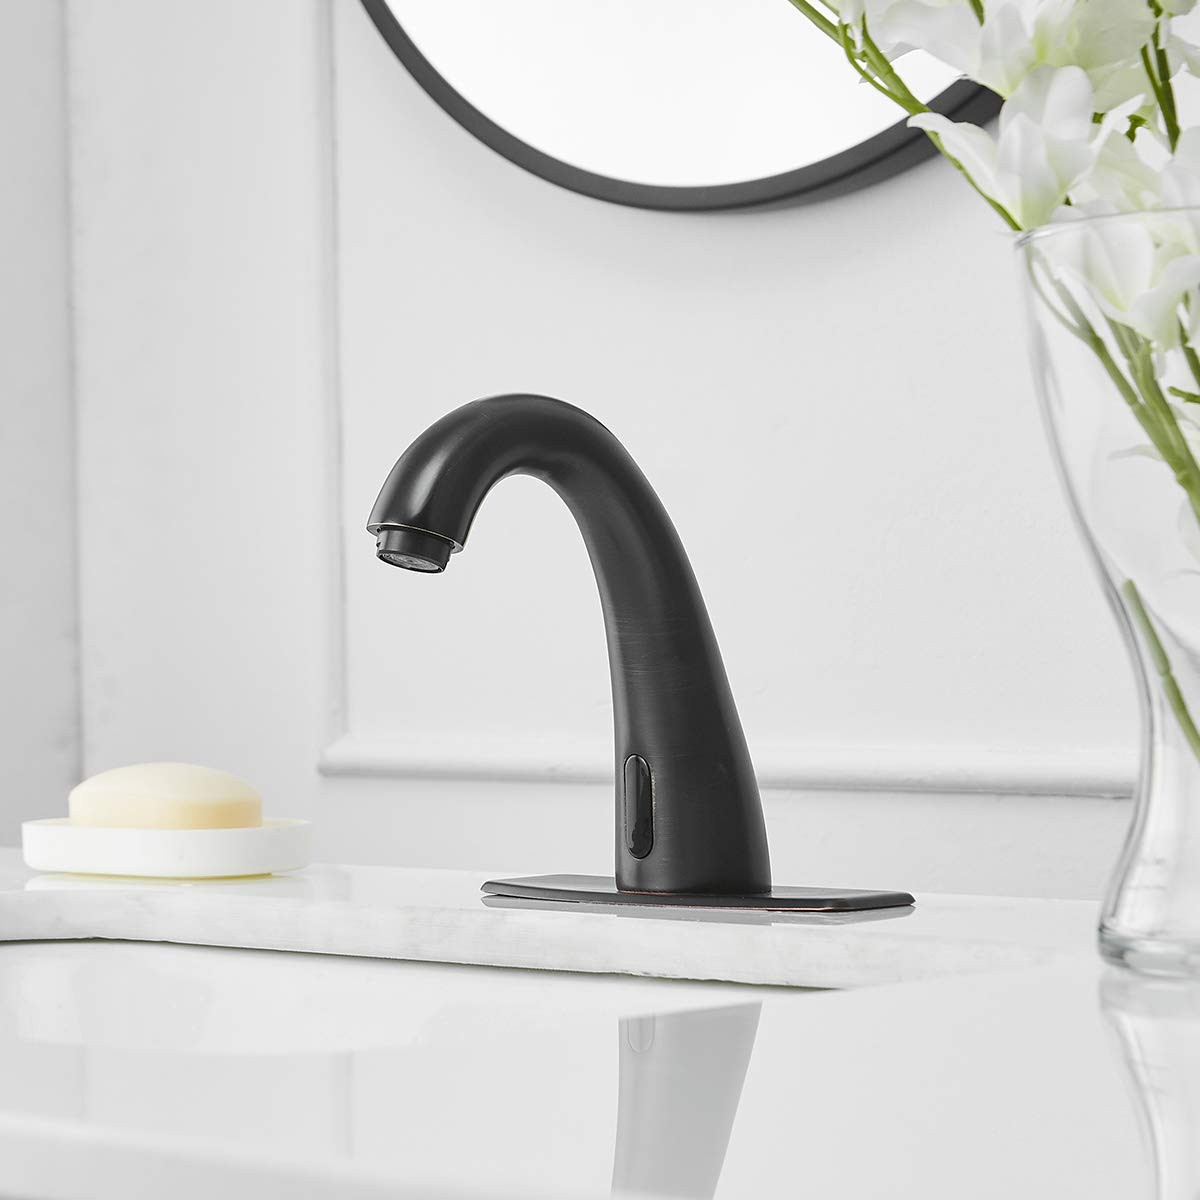 Greenspring Commercial Touch-Free Faucet Automatic Sensor Bathroom Sink Faucet Hot Cold Mixer Faucet Just use battery,Brushed Nickel